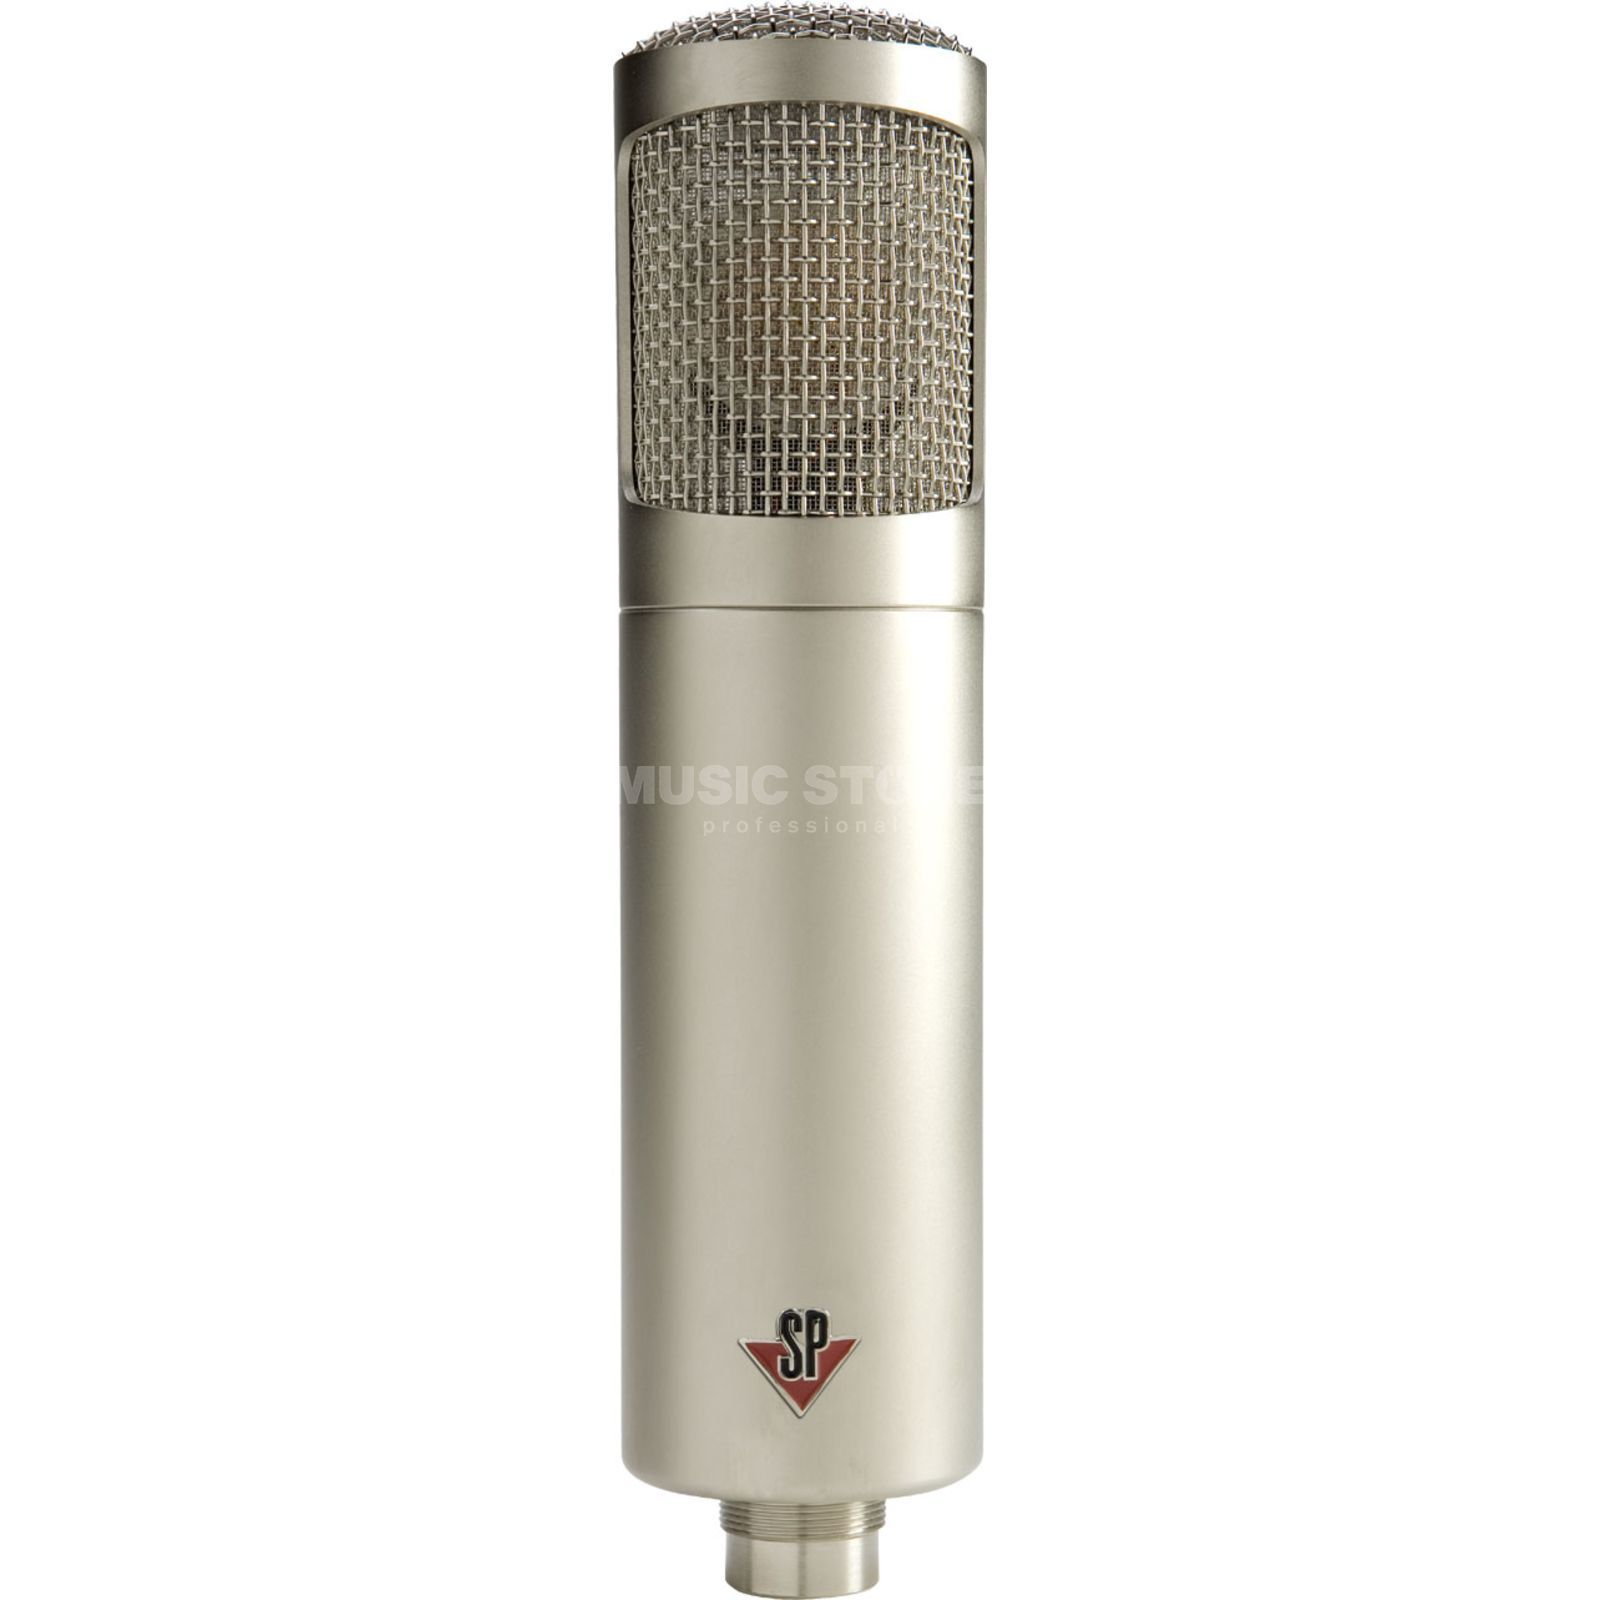 Studio Projects C1 Large Diaphragm Cardioid Condenser Microphone Produktbillede